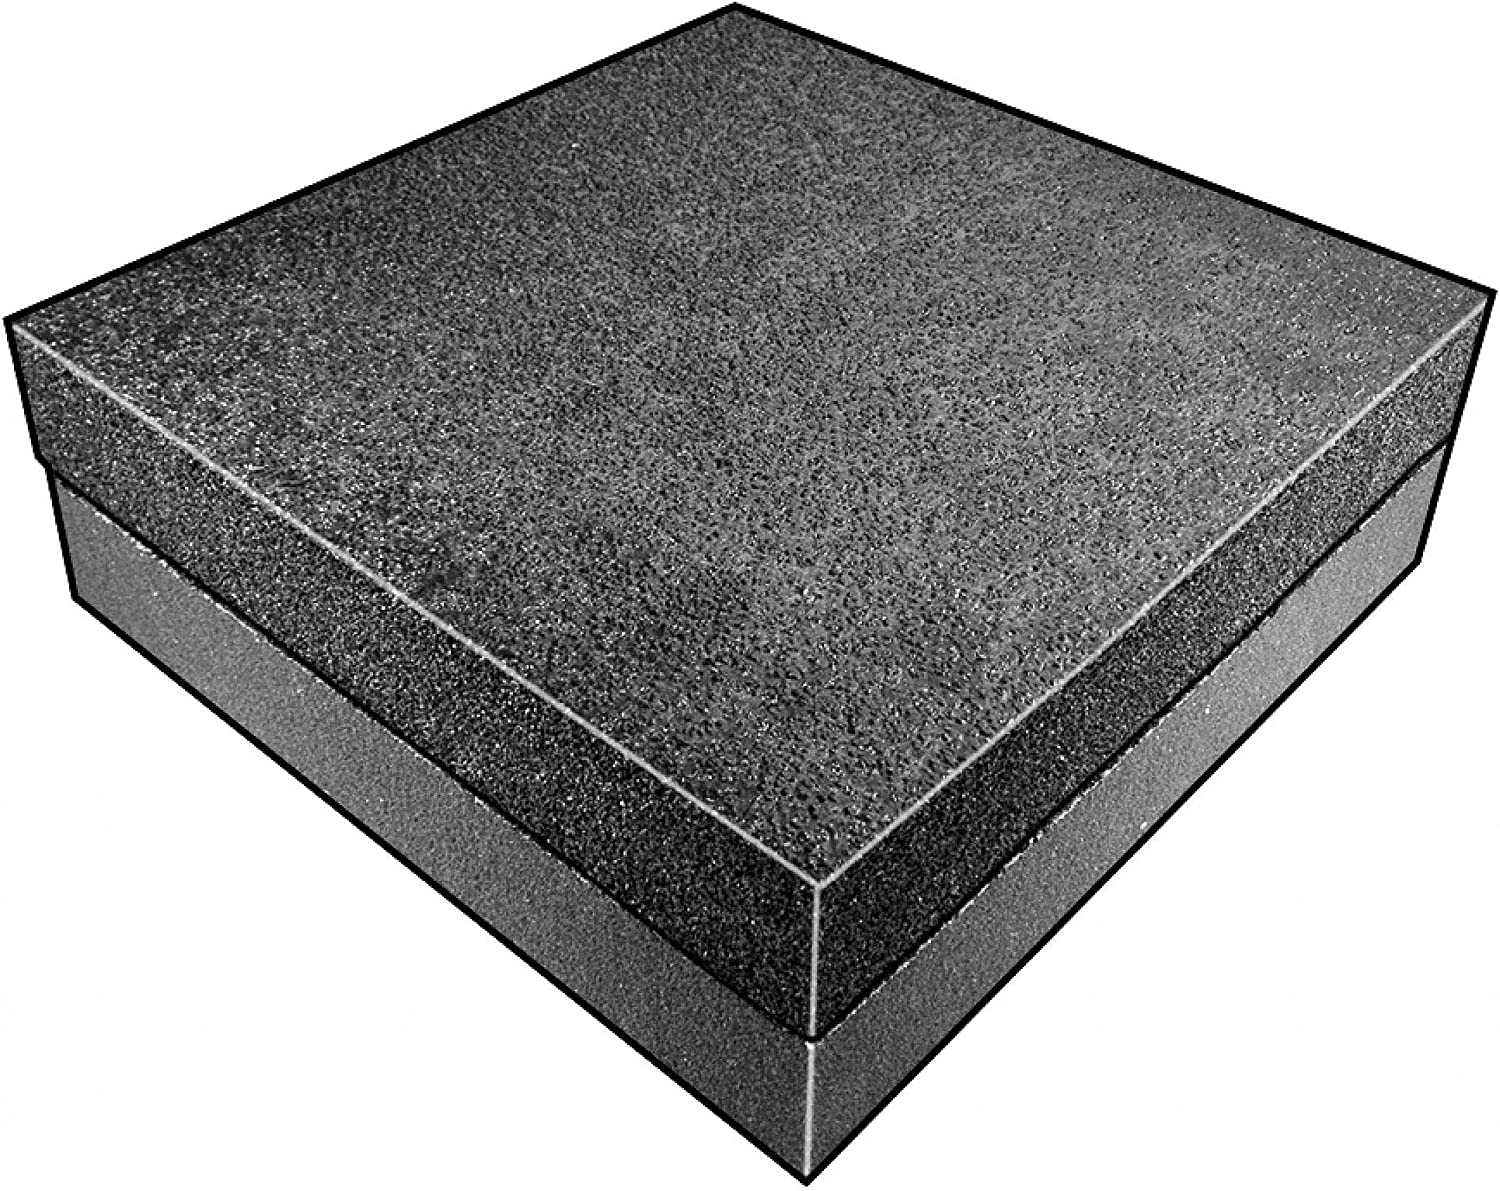 Polyurethane//Polyethylene 4 Thick Open Cell//Closed Cell Foam Sheet Charcoal 24 W X 48 L